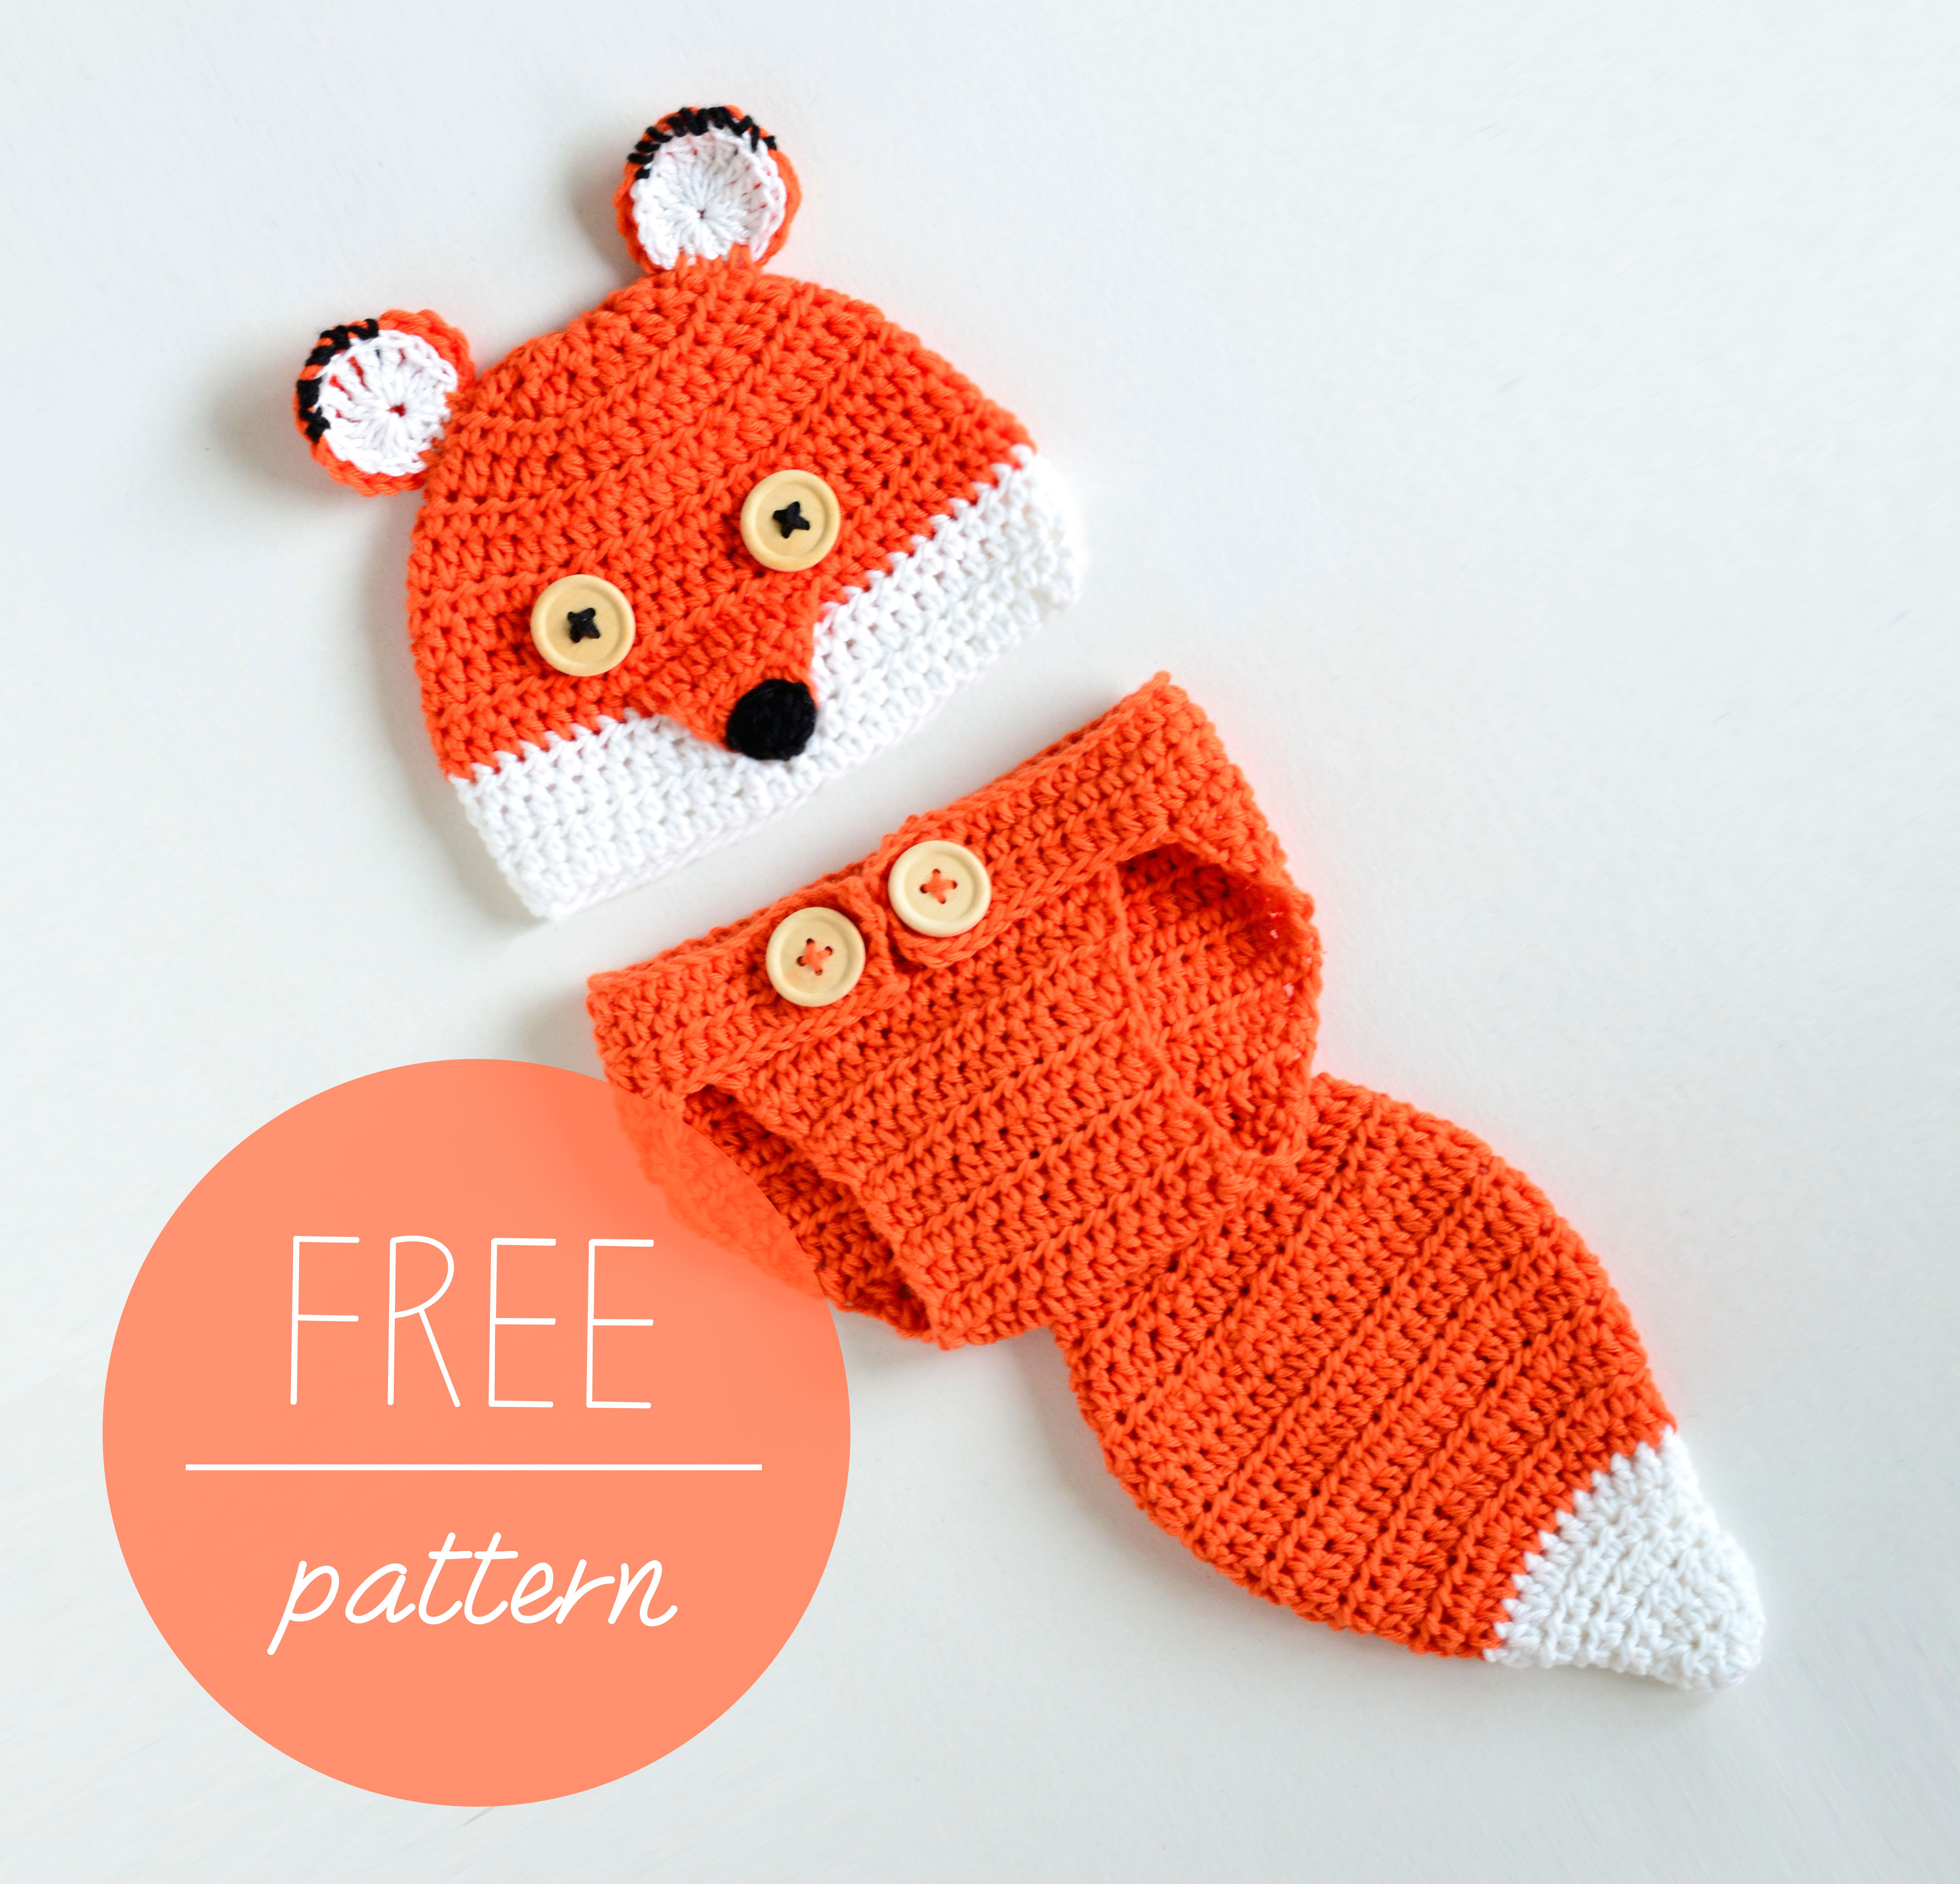 Free Diaper Cover Pattern Fresh Crochet Baby Hat and Diaper Cover – Cute Fox – Croby Patterns Of Brilliant 41 Pictures Free Diaper Cover Pattern